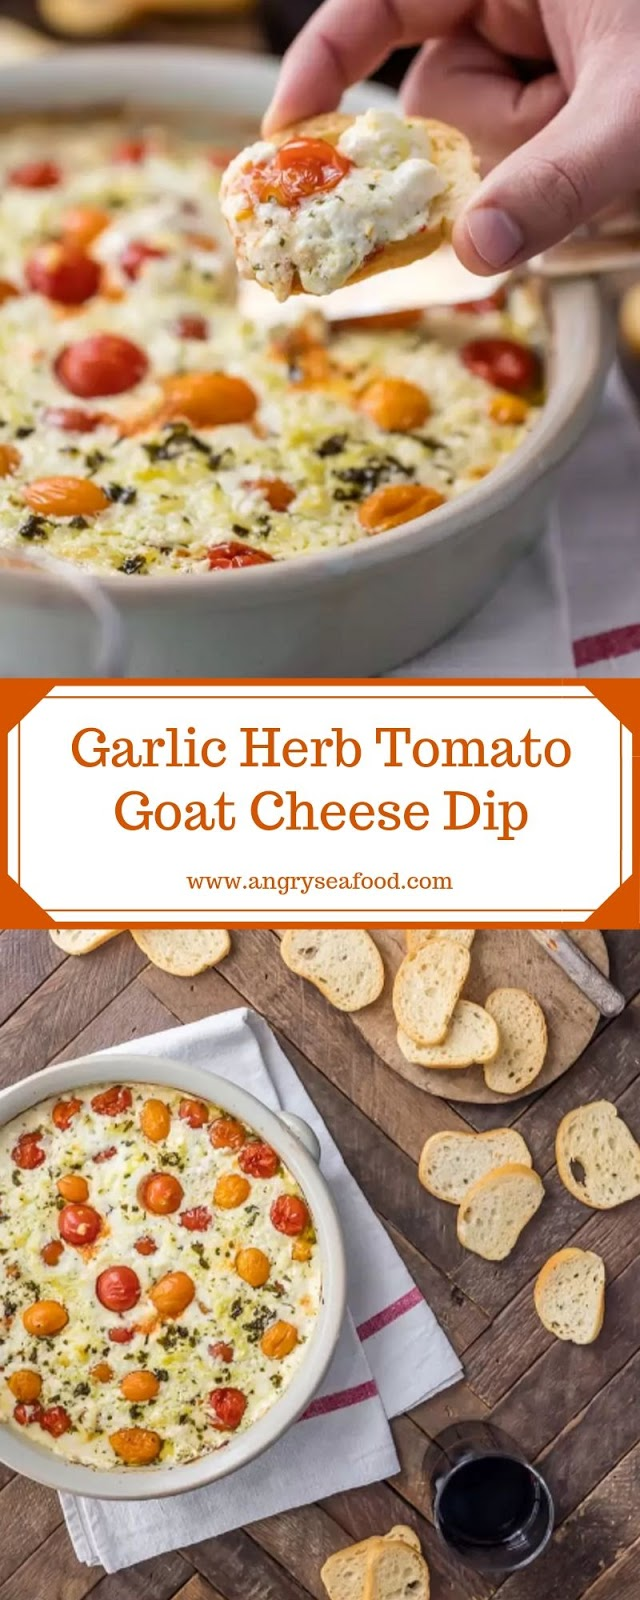 Garlic Herb Tomato Goat Cheese Dip